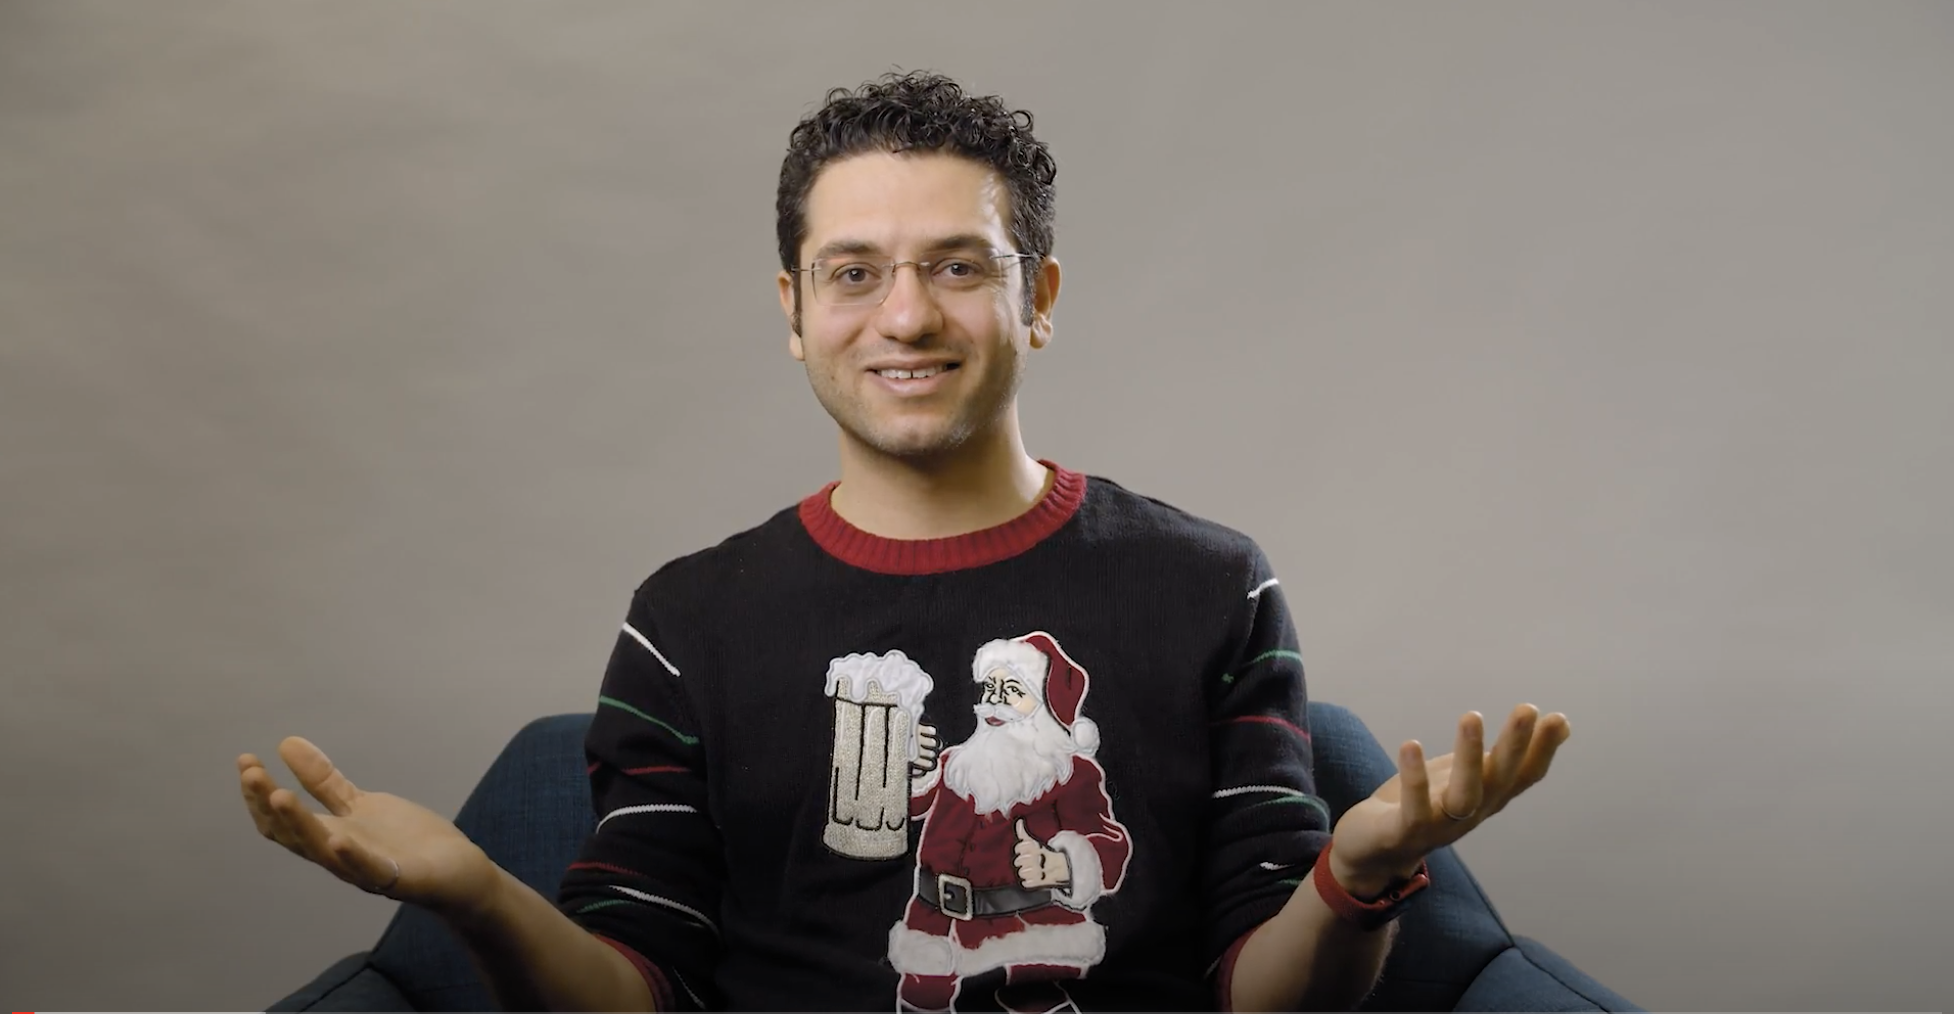 ApplyBoard CEO and Co-Founder in ugly holiday sweater